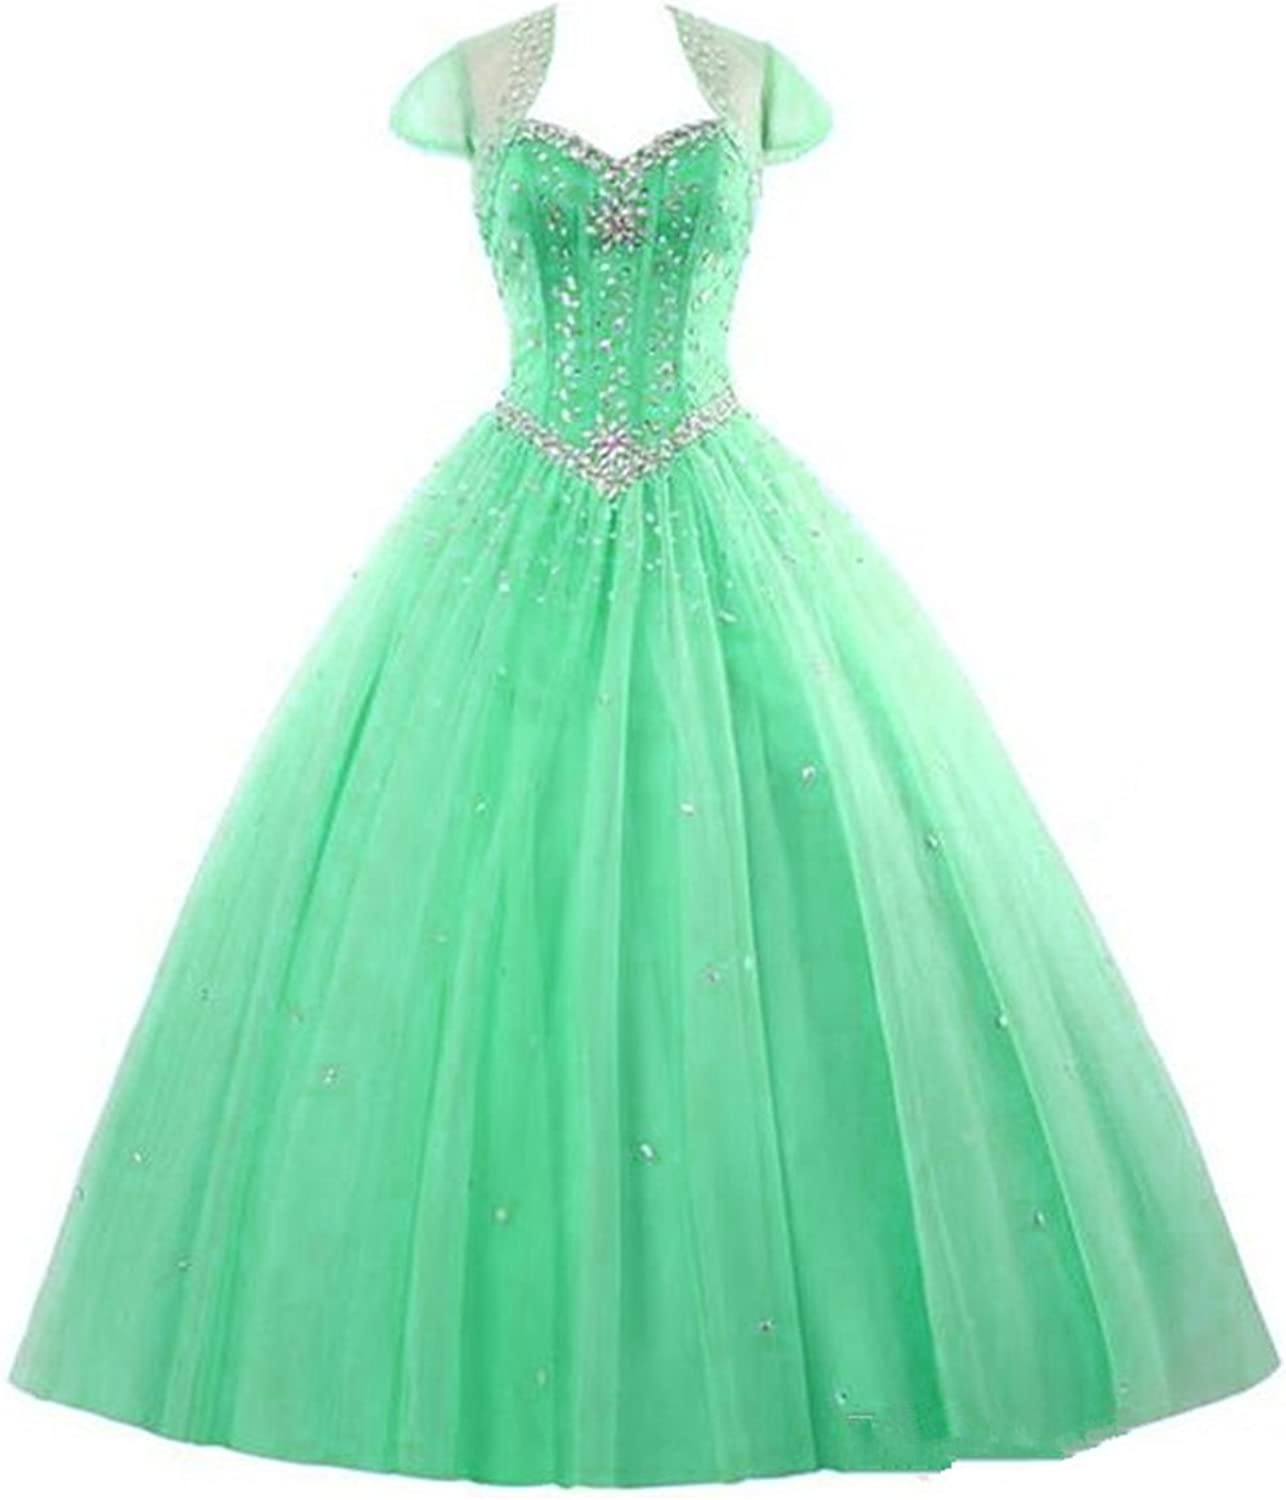 BEALEGAN Lady Women's Beads Crystals Tulle Prom Quinceanera Dresses With Jacket